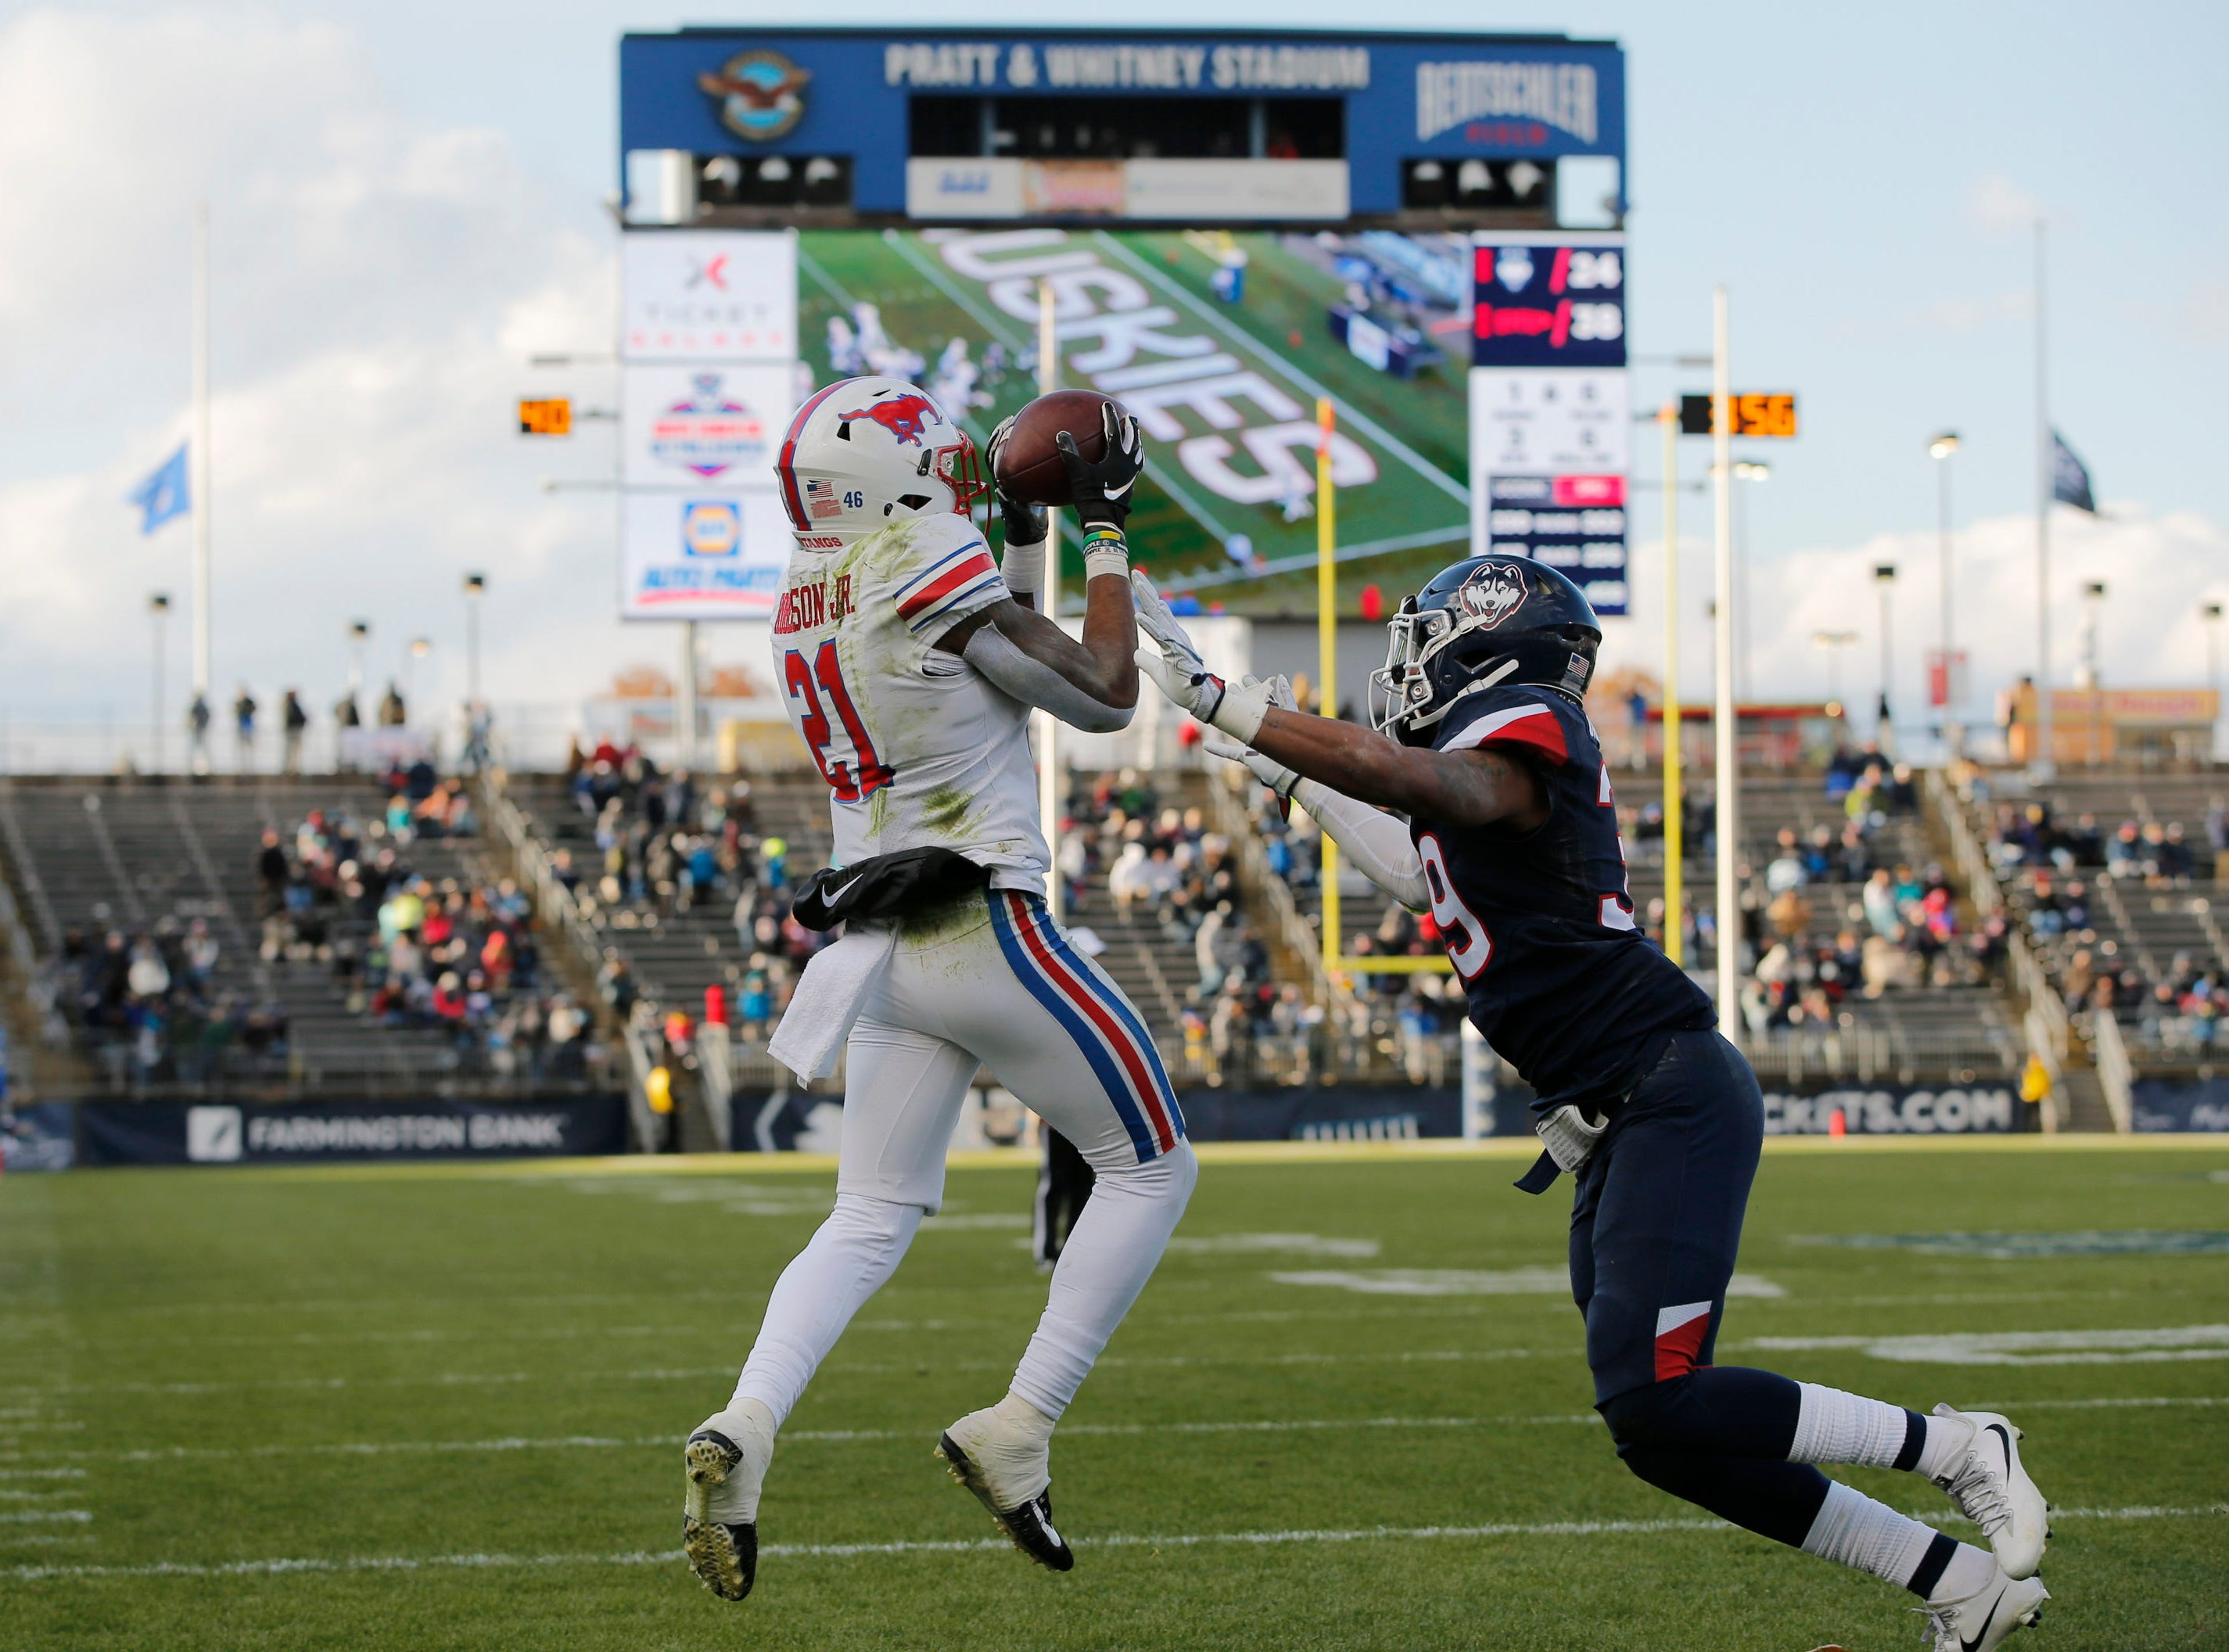 Southern Methodist Mustangs wide receiver Reggie Roberson Jr. (21) makes the touchdown catch against Connecticut Huskies defensive back Ryan Carroll (39) in the second half at Pratt & Whitney Stadium at Rentschler Field.